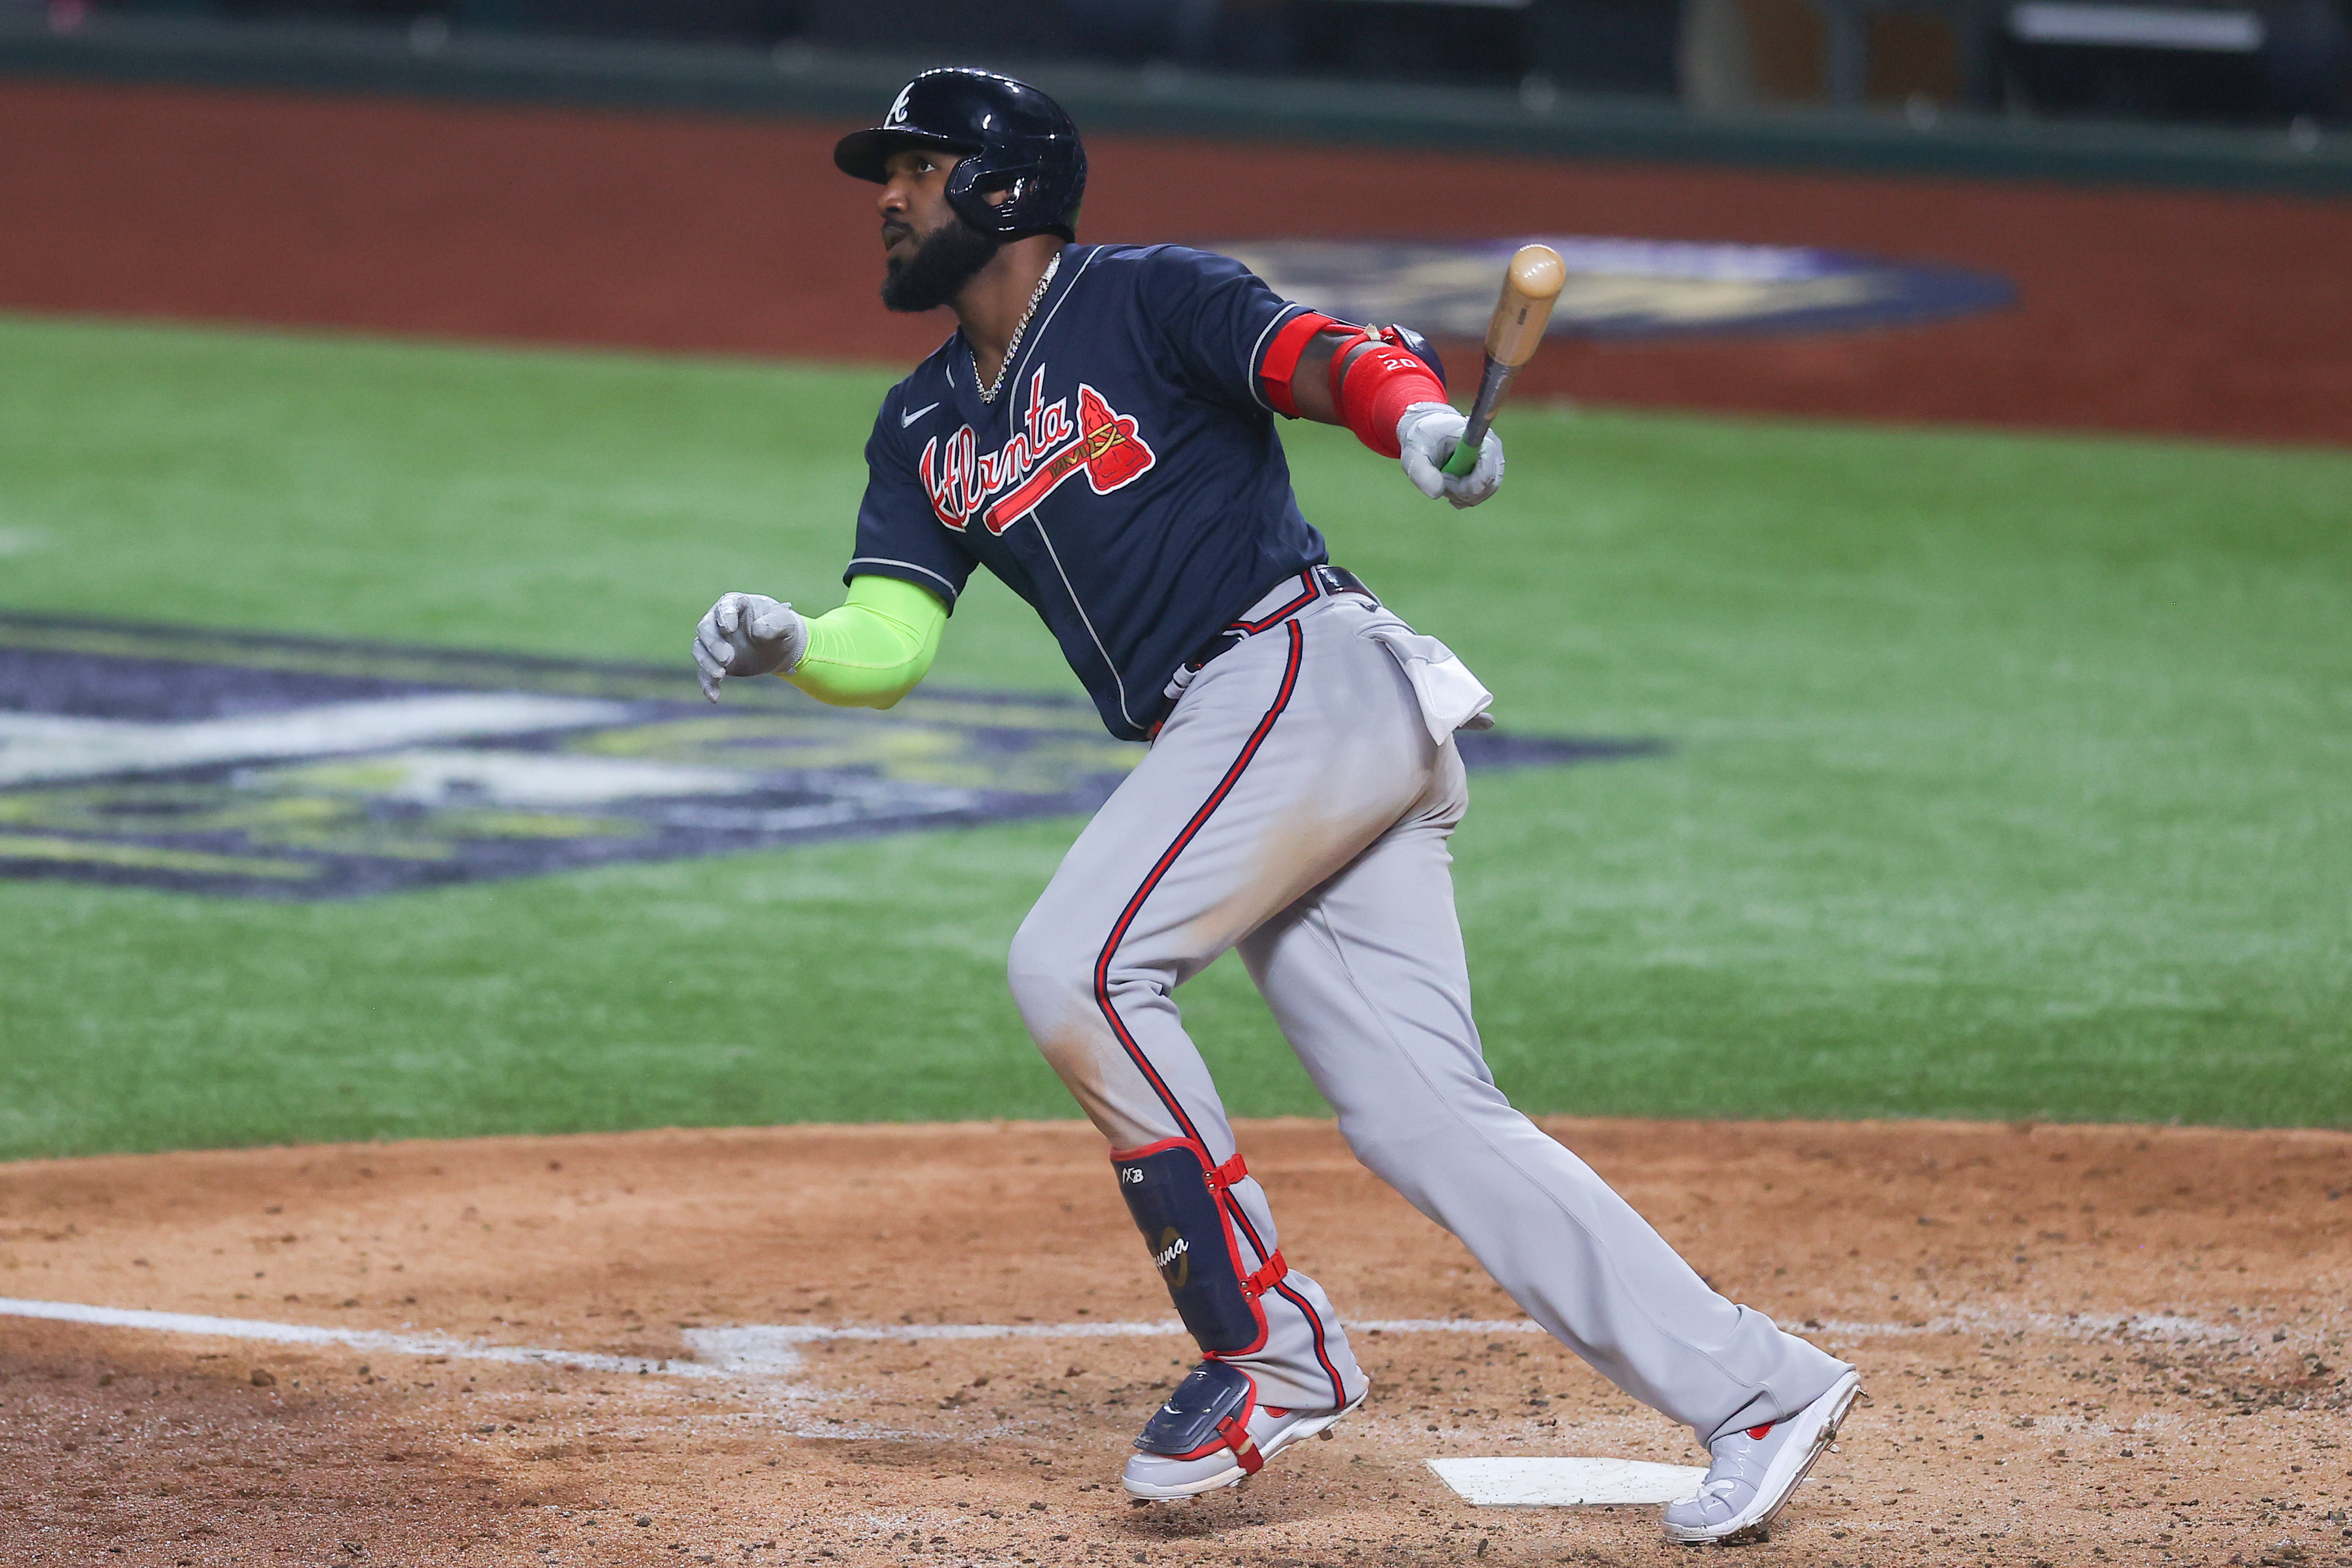 Marcell Ozuna #20 of the Atlanta Braves flies out against the Los Angeles Dodgers during the third inning in Game Seven of the National League Championship Series at Globe Life Field on October 18, 2020 in Arlington, Texas.